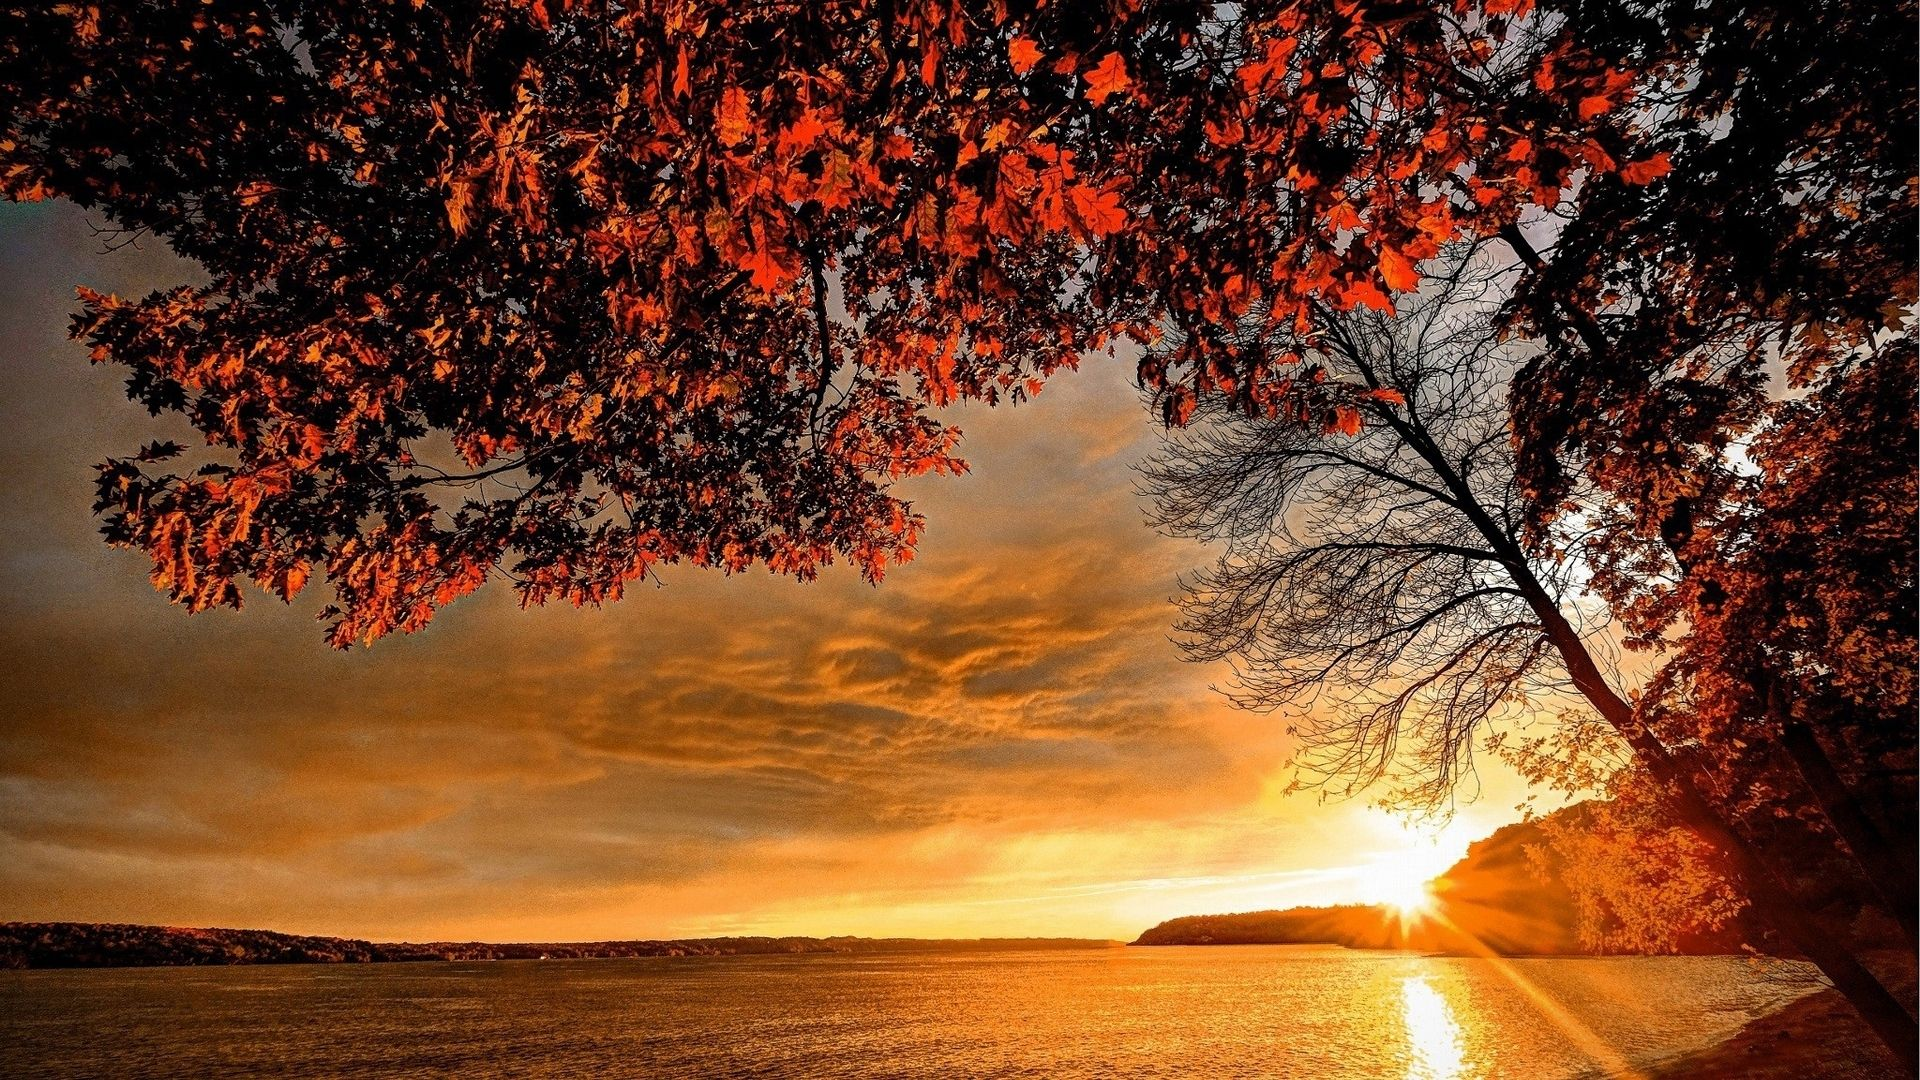 Fall Hd Wallpapers 1080p Widescreen 15 Paysages 224 Mettre En Fonds D 233 Cran Fonds D 233 Cran